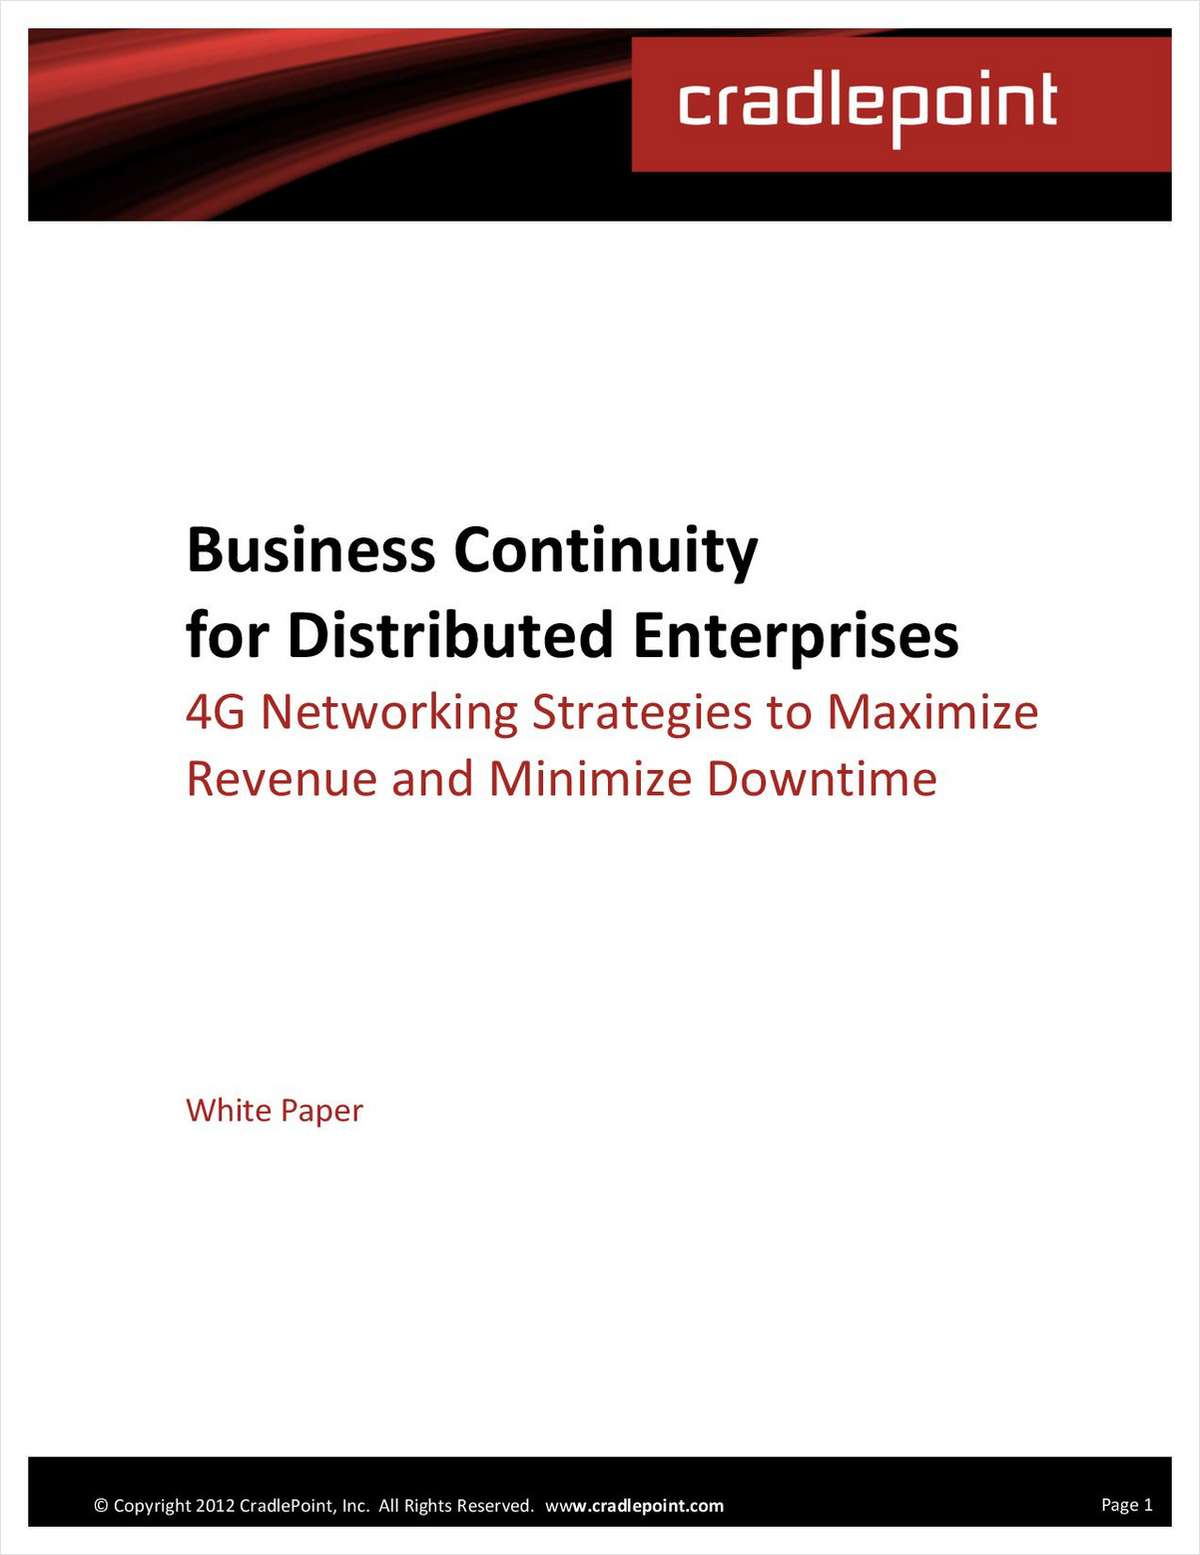 Uninterrupted Internet: Maximizing Revenue and Minimizing Business Risk with 3G/4G Failover